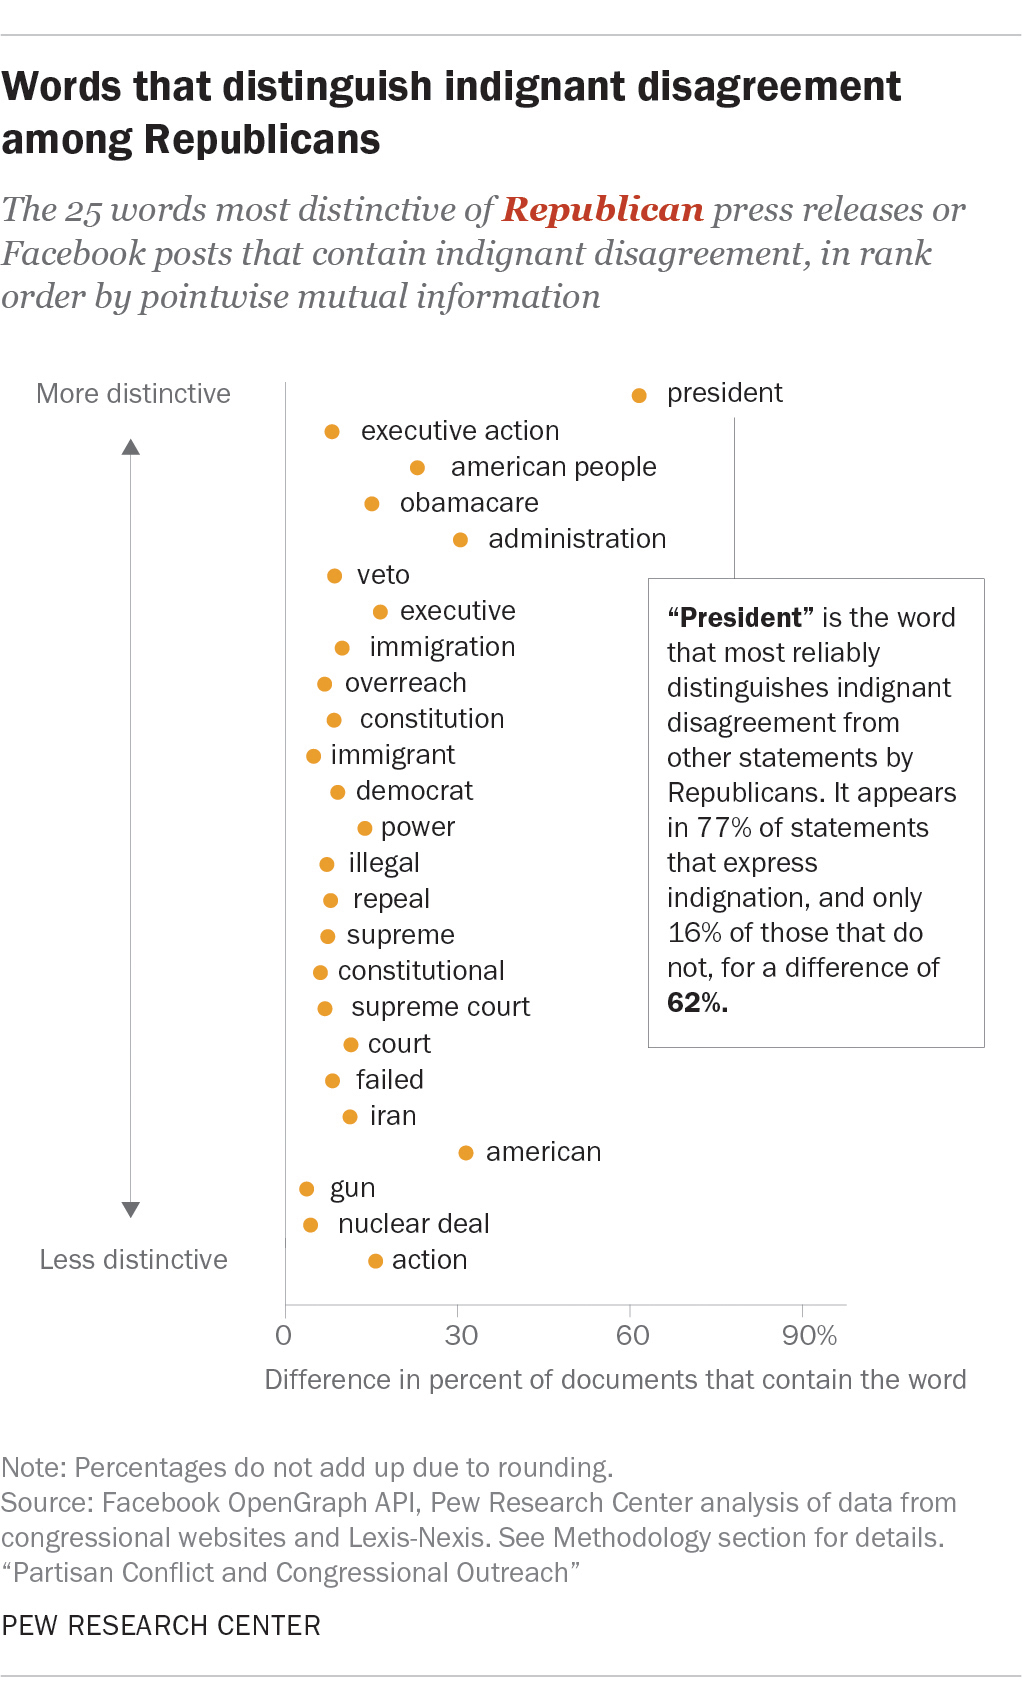 Words that distinguish indignant disagreement among Republicans